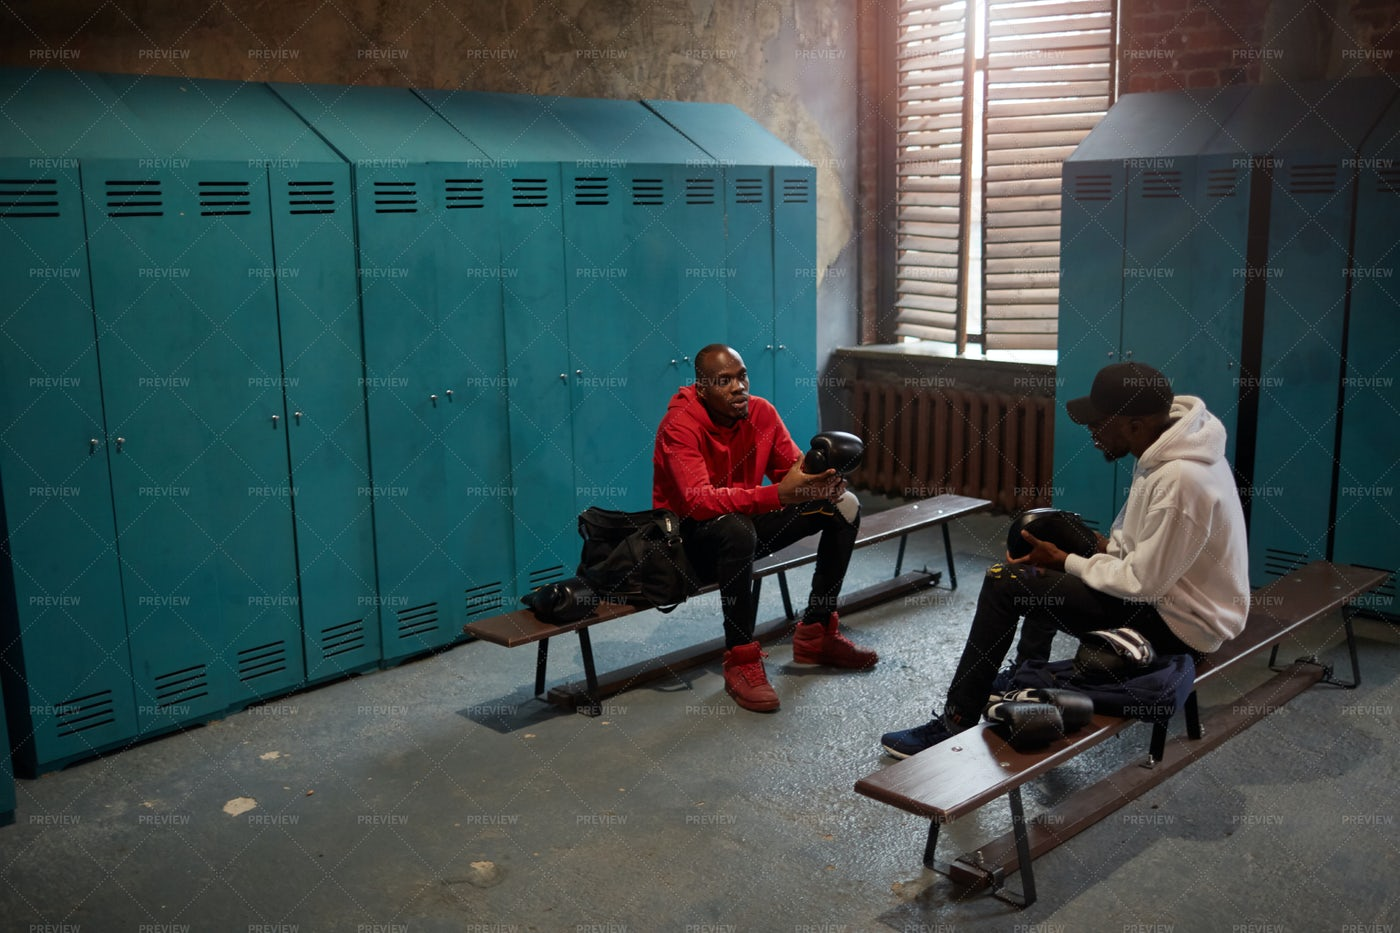 Two Boxers In Locker Room: Stock Photos